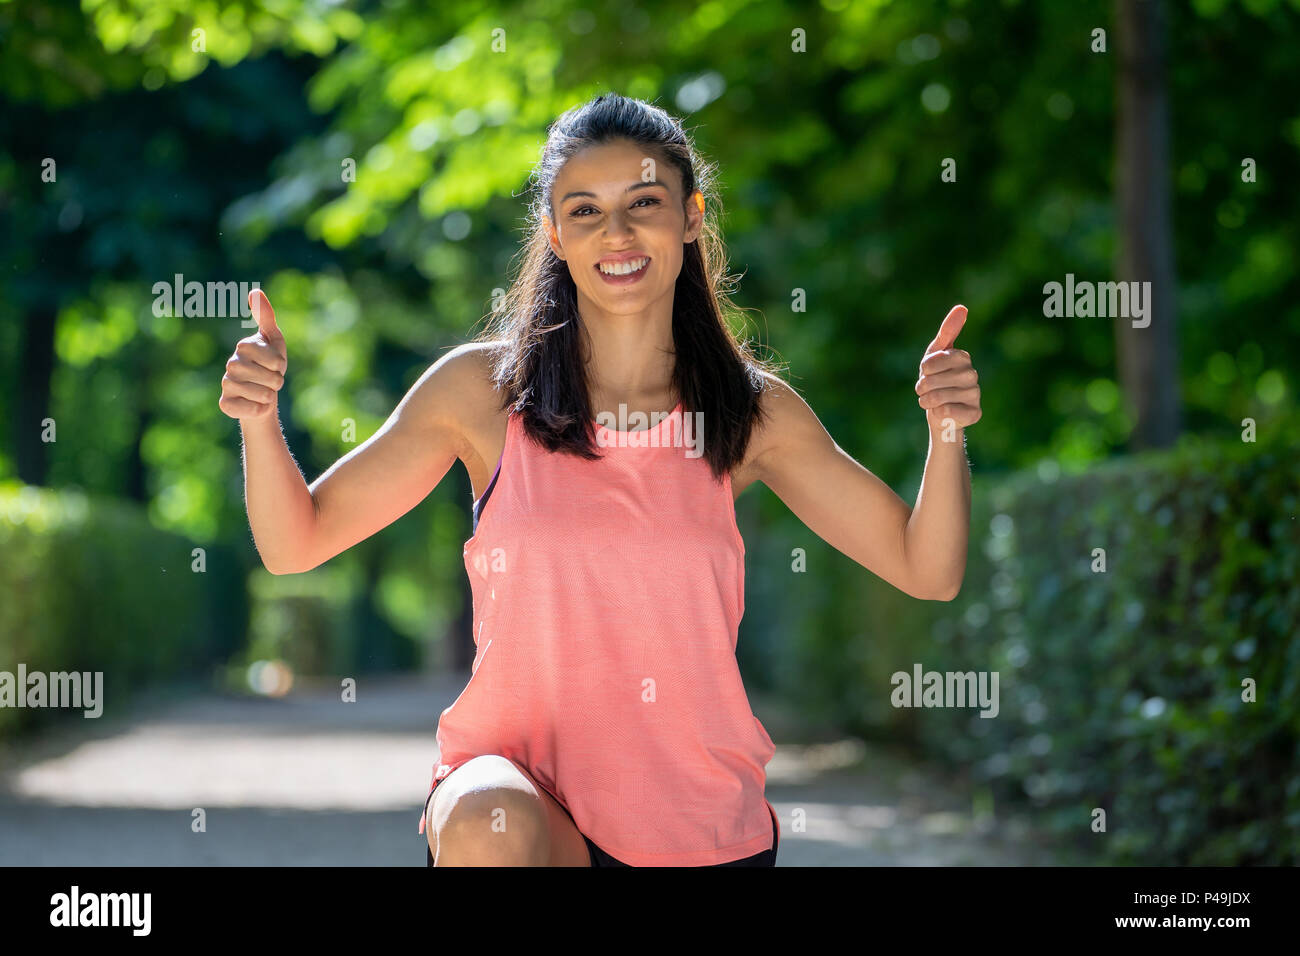 0003ba8982dda Summer portrait of sportive latin girl in pink tank top showing a thumb up  cheerfully smiling